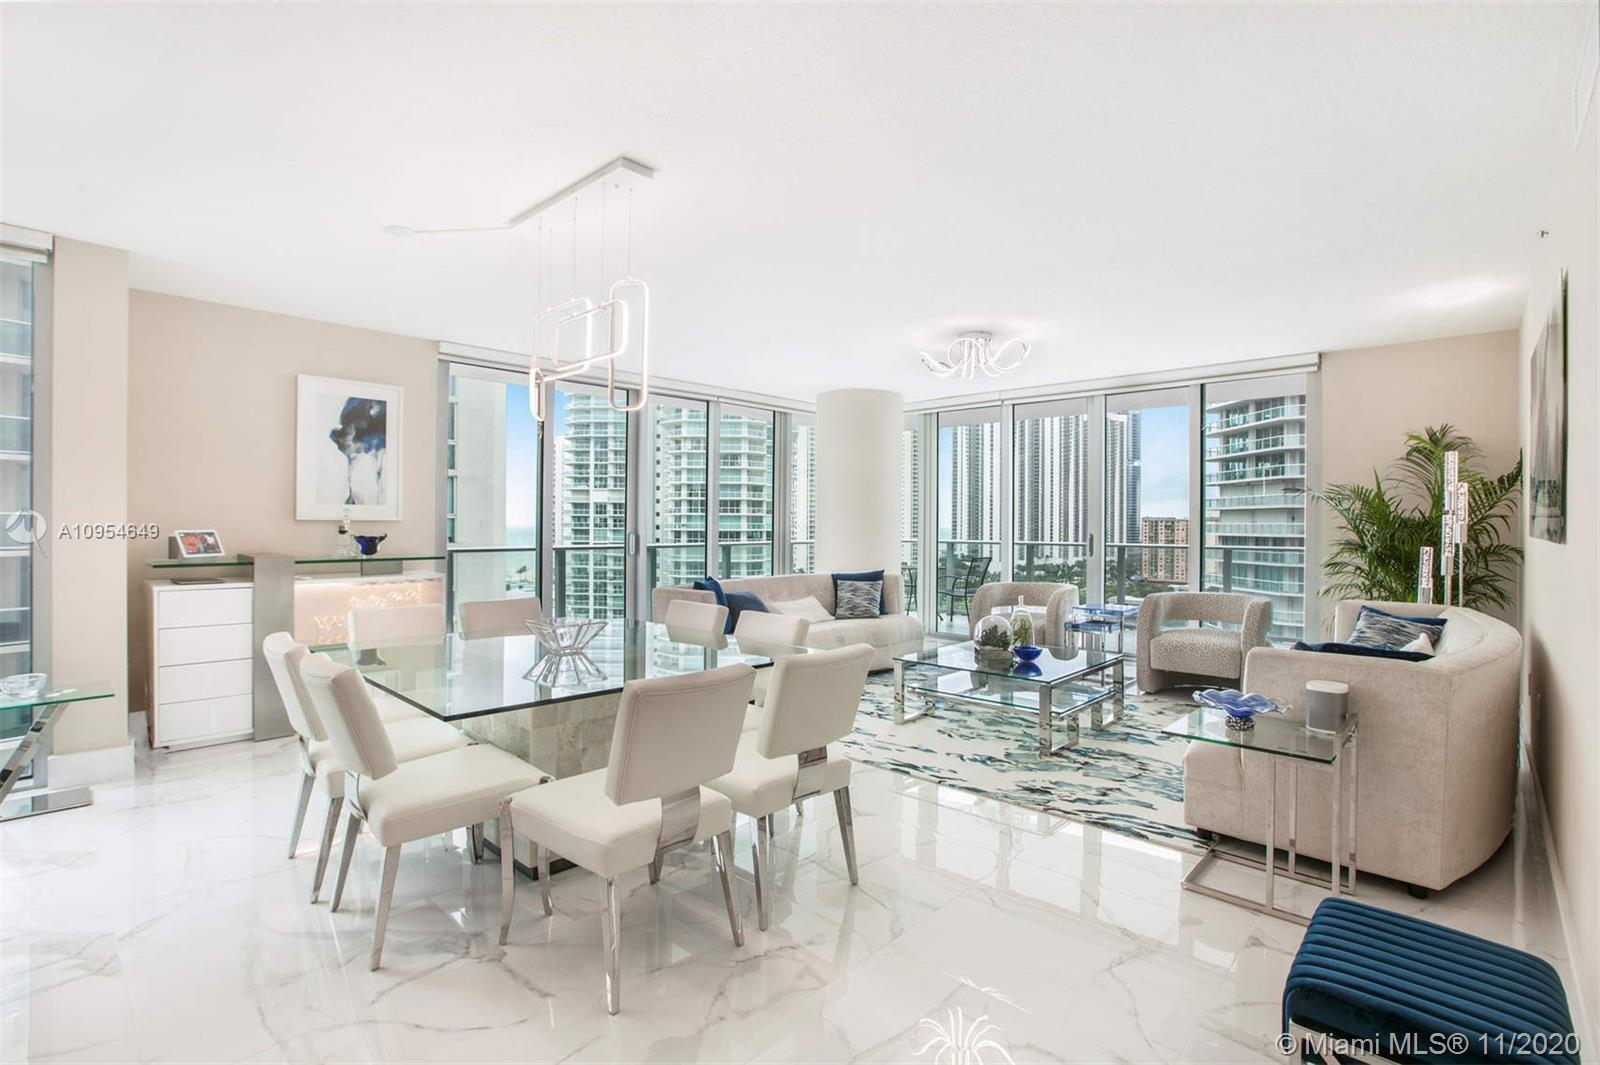 Stunning corner unit at Parque Towers in Sunny Isles within walking distance to the beach. This resi